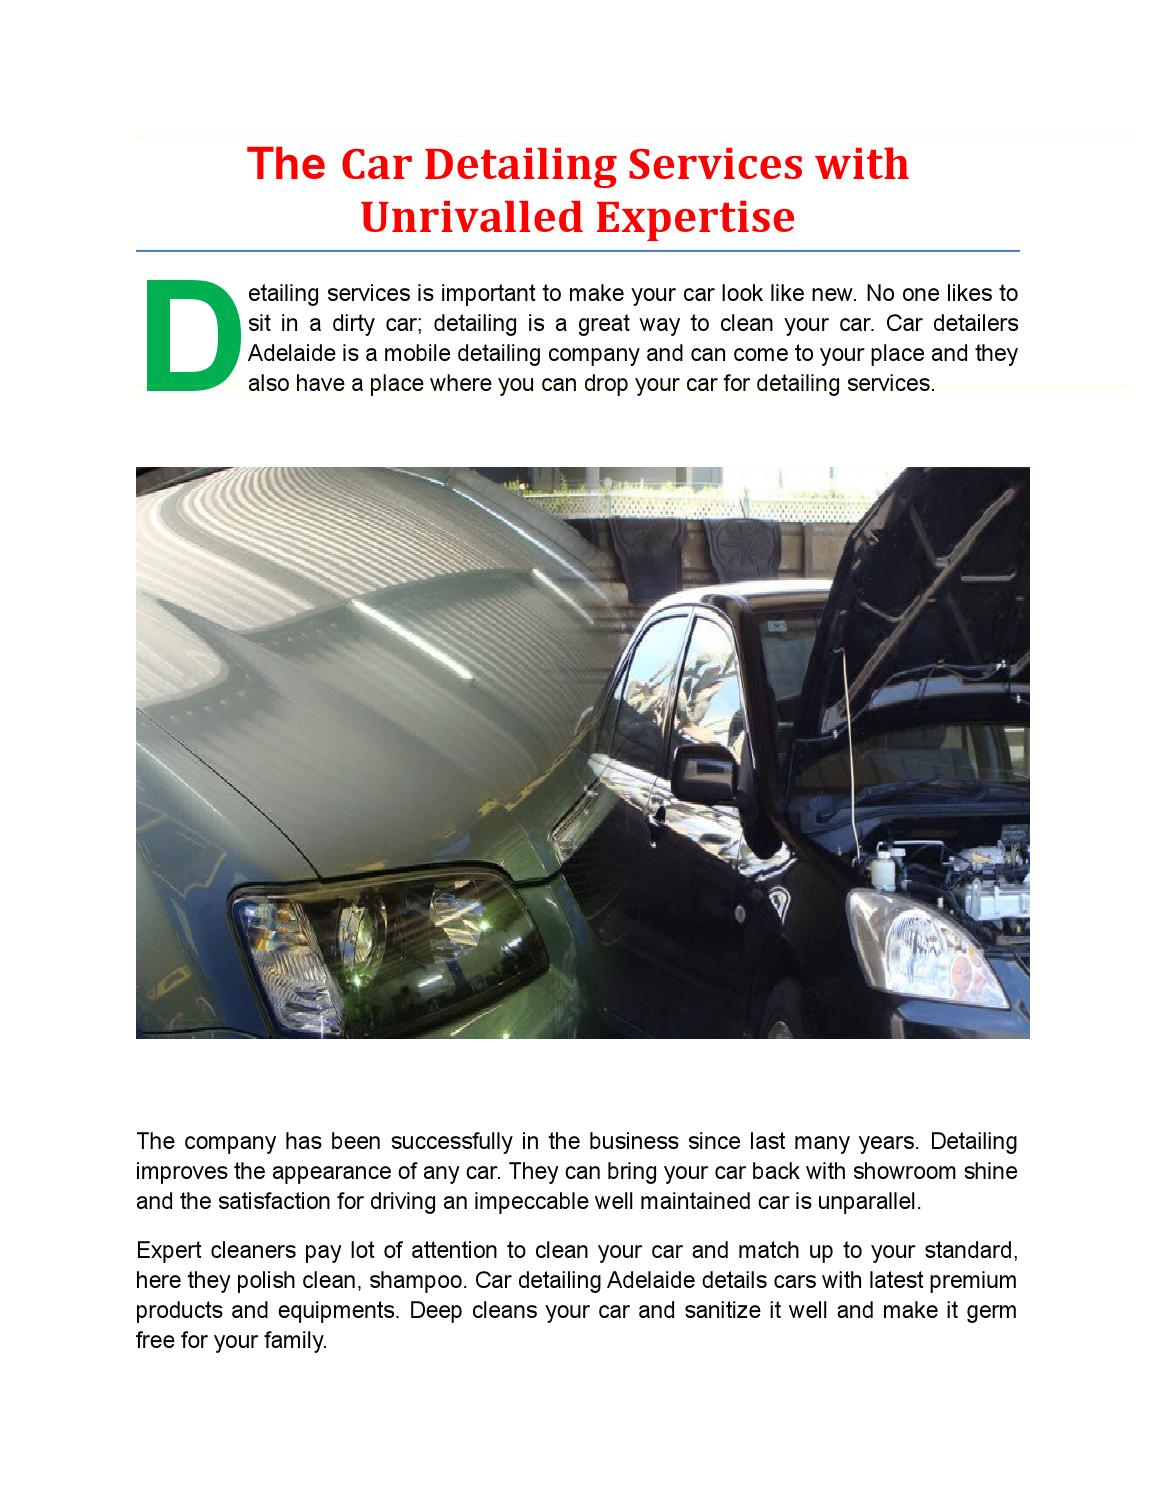 The Car Detailing Services With Unrivalled Expertise By Gleemmachine